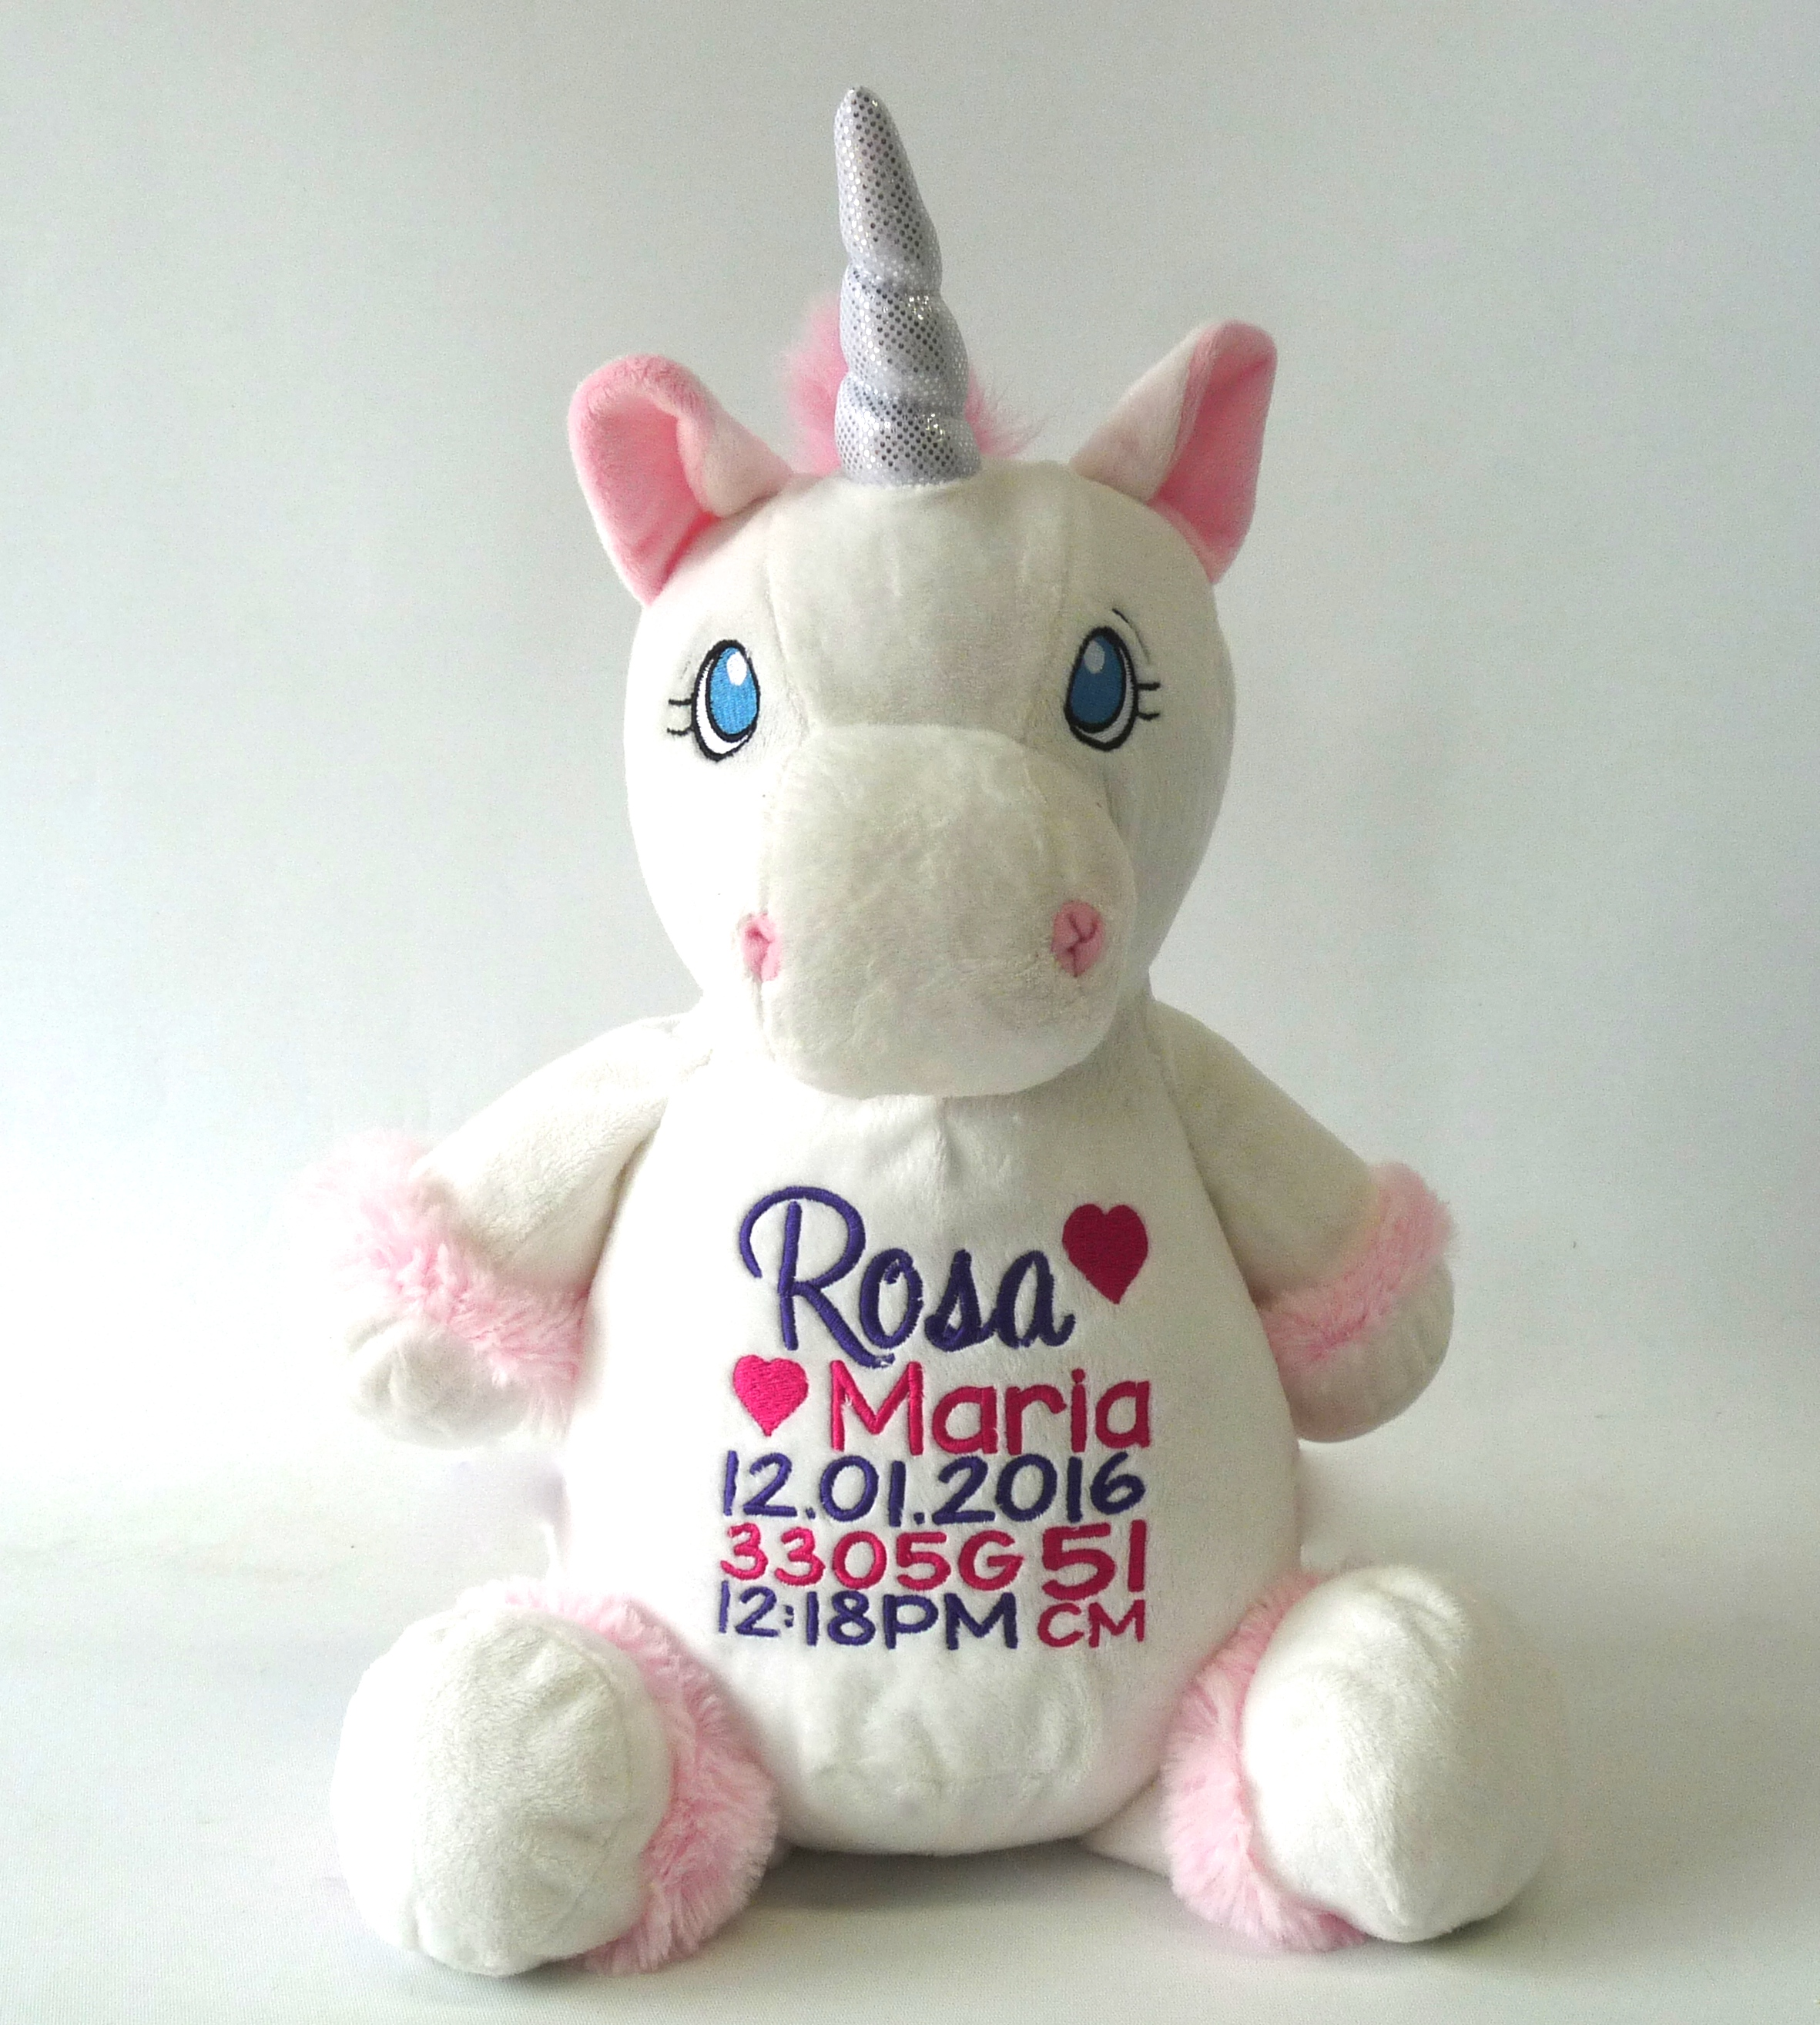 This+is+an+image+of+White+Unicorn+personalised+baby+gifts+from+My+Teddy